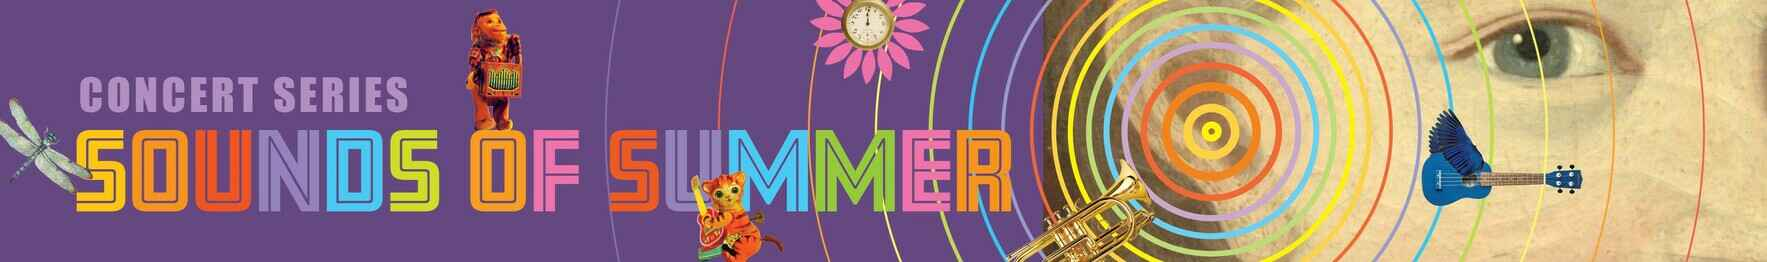 Sounds of Summer feat. The Bruce Middle Band image